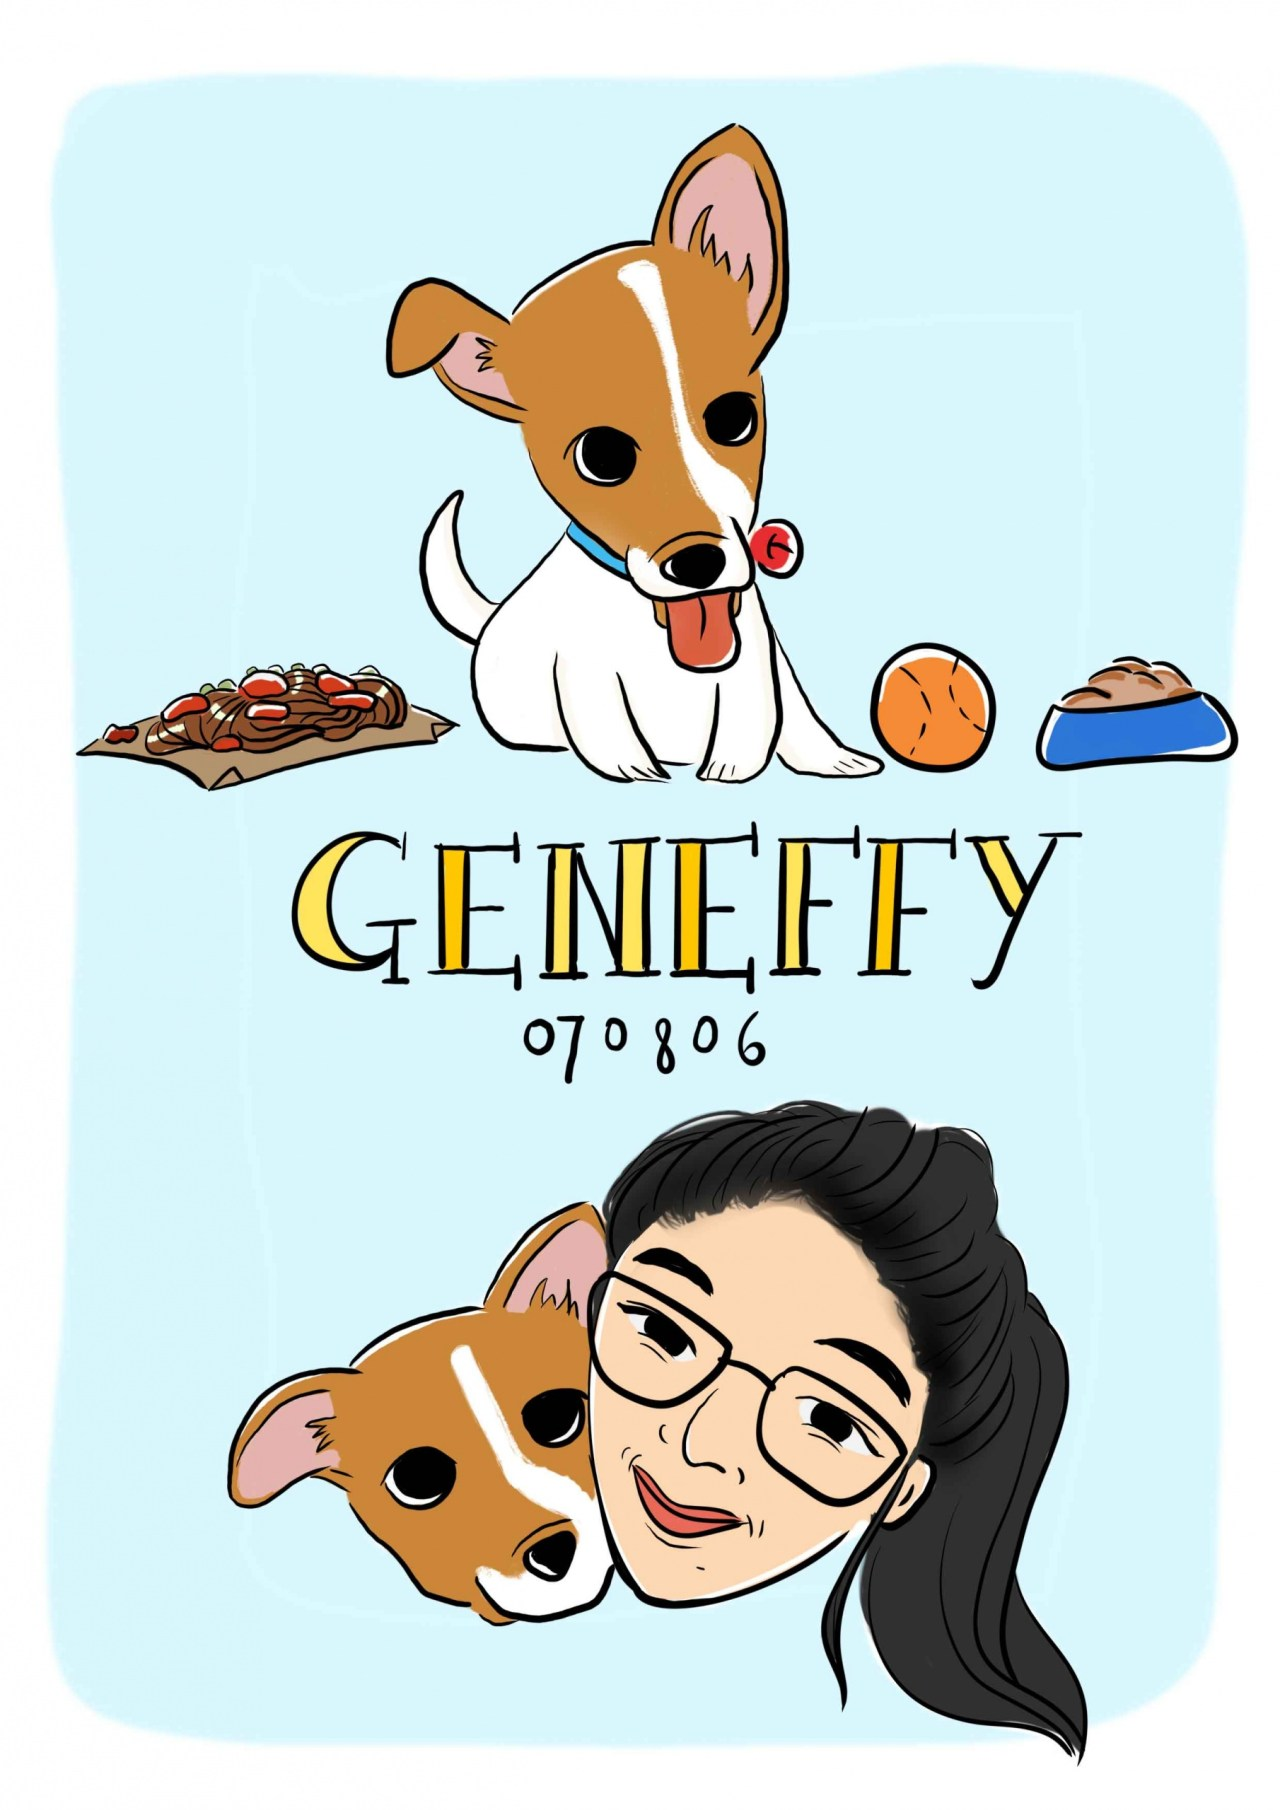 Illustration - Pet dog Geneffy - digital art